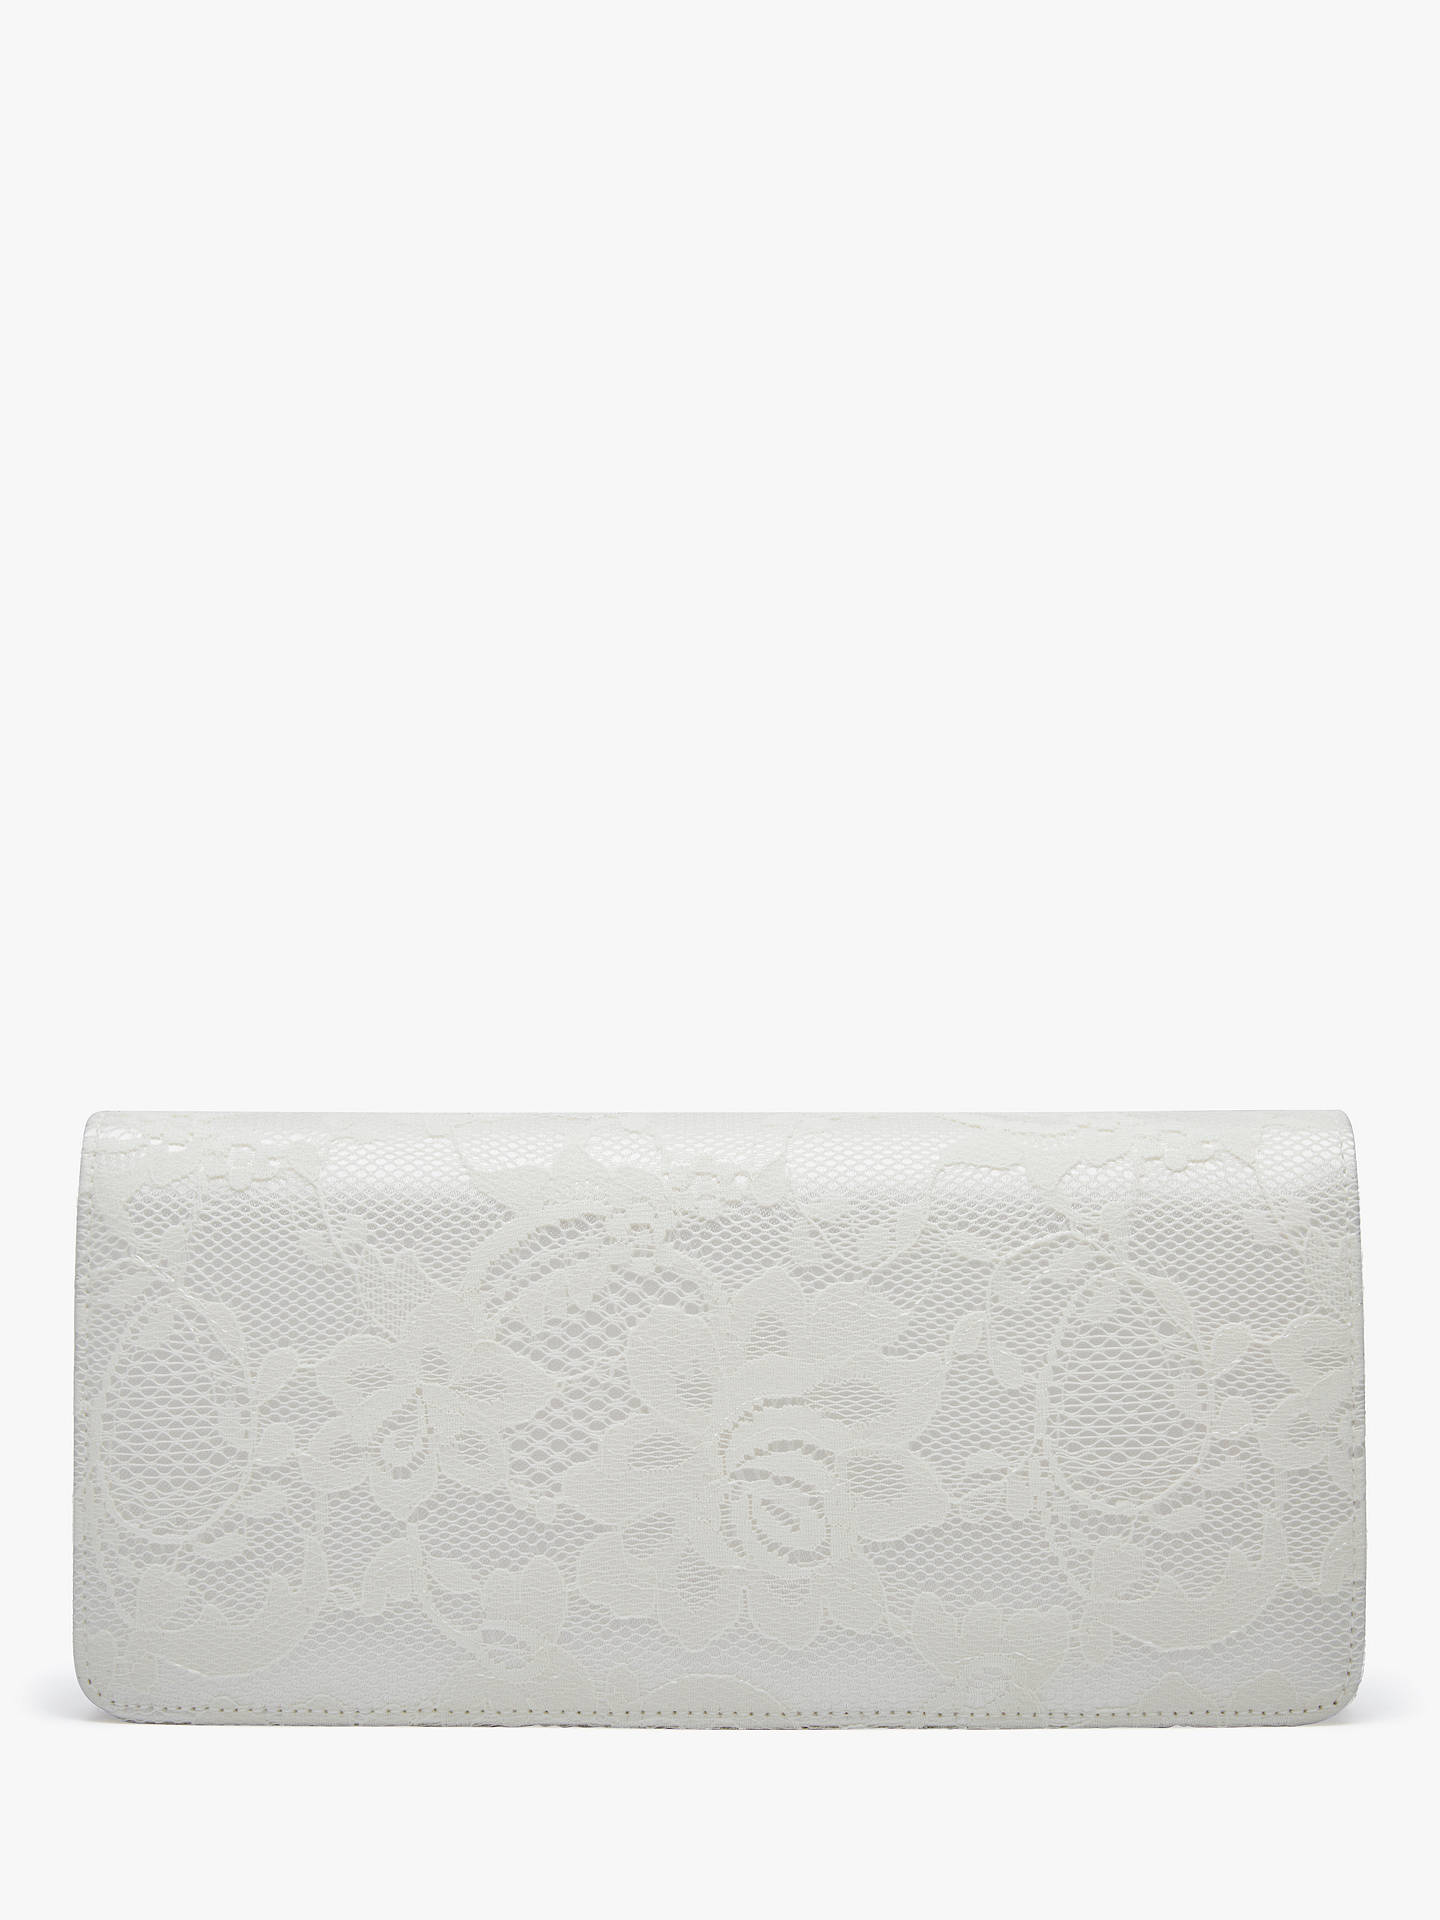 0682b8fd39 Buy Rainbow Club Tilly Satin Clutch Bag, Ivory Online at johnlewis.com